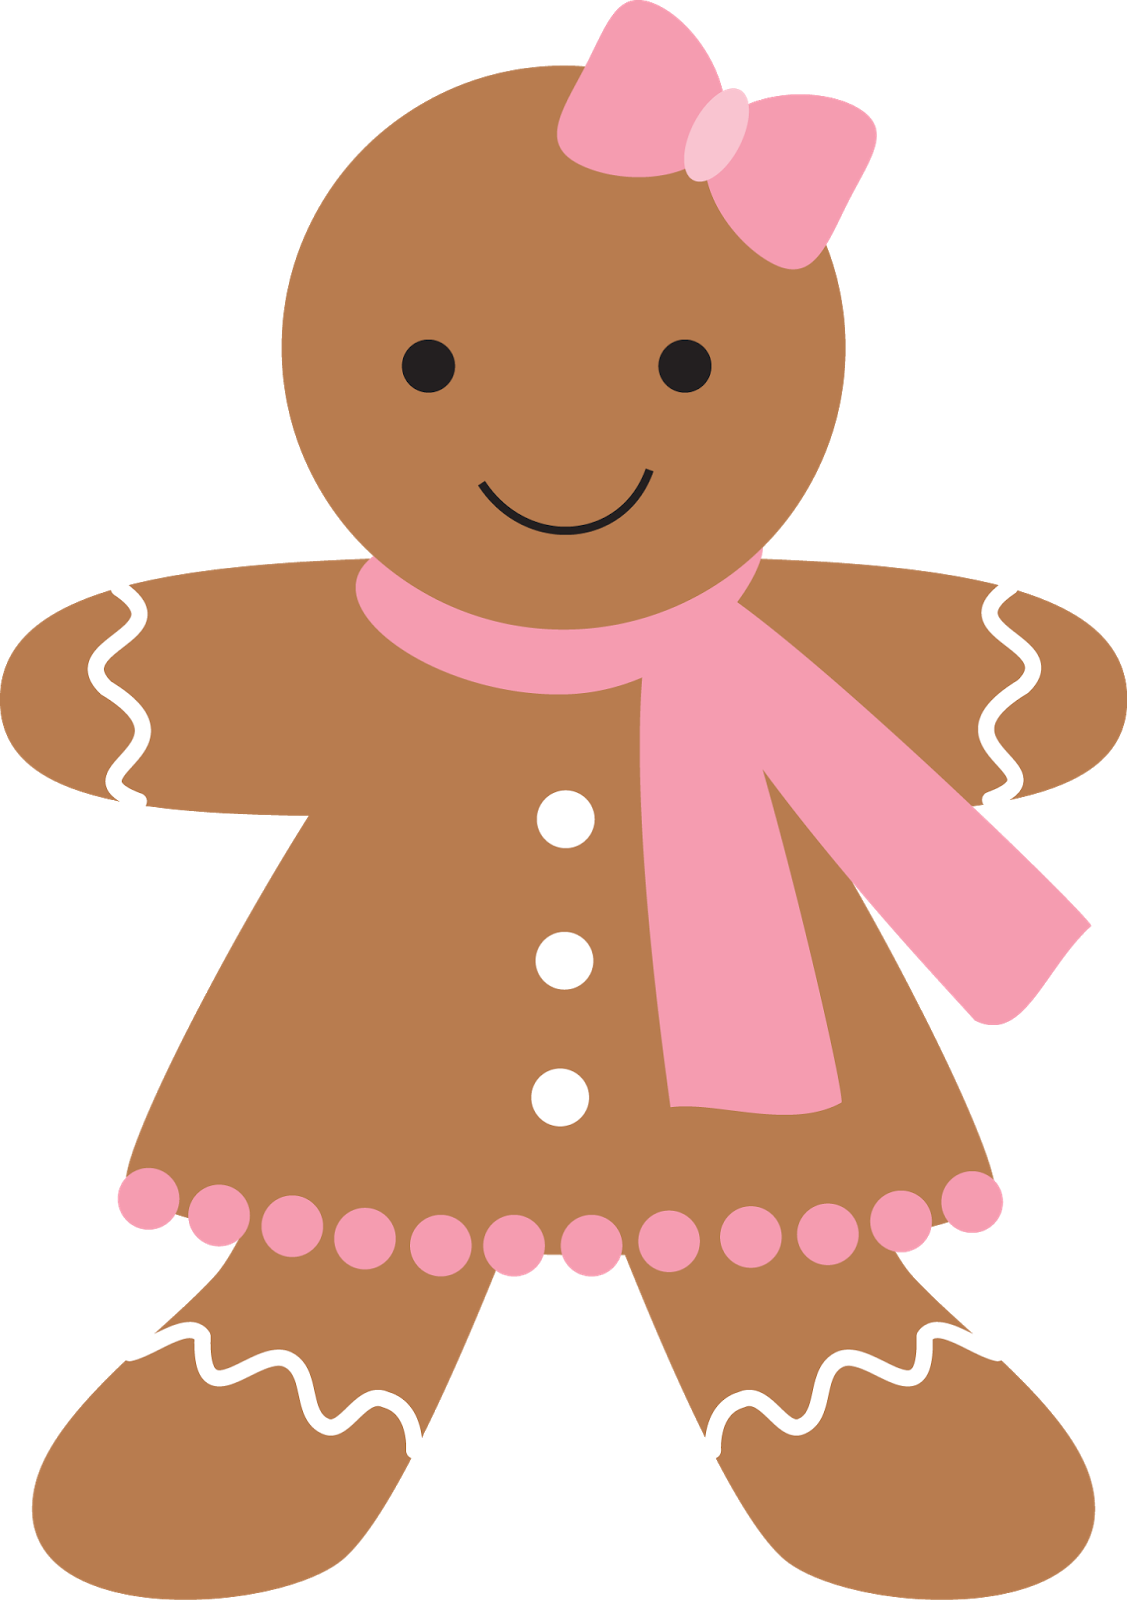 Ibm y kwbgpos png. Land clipart gingerbread